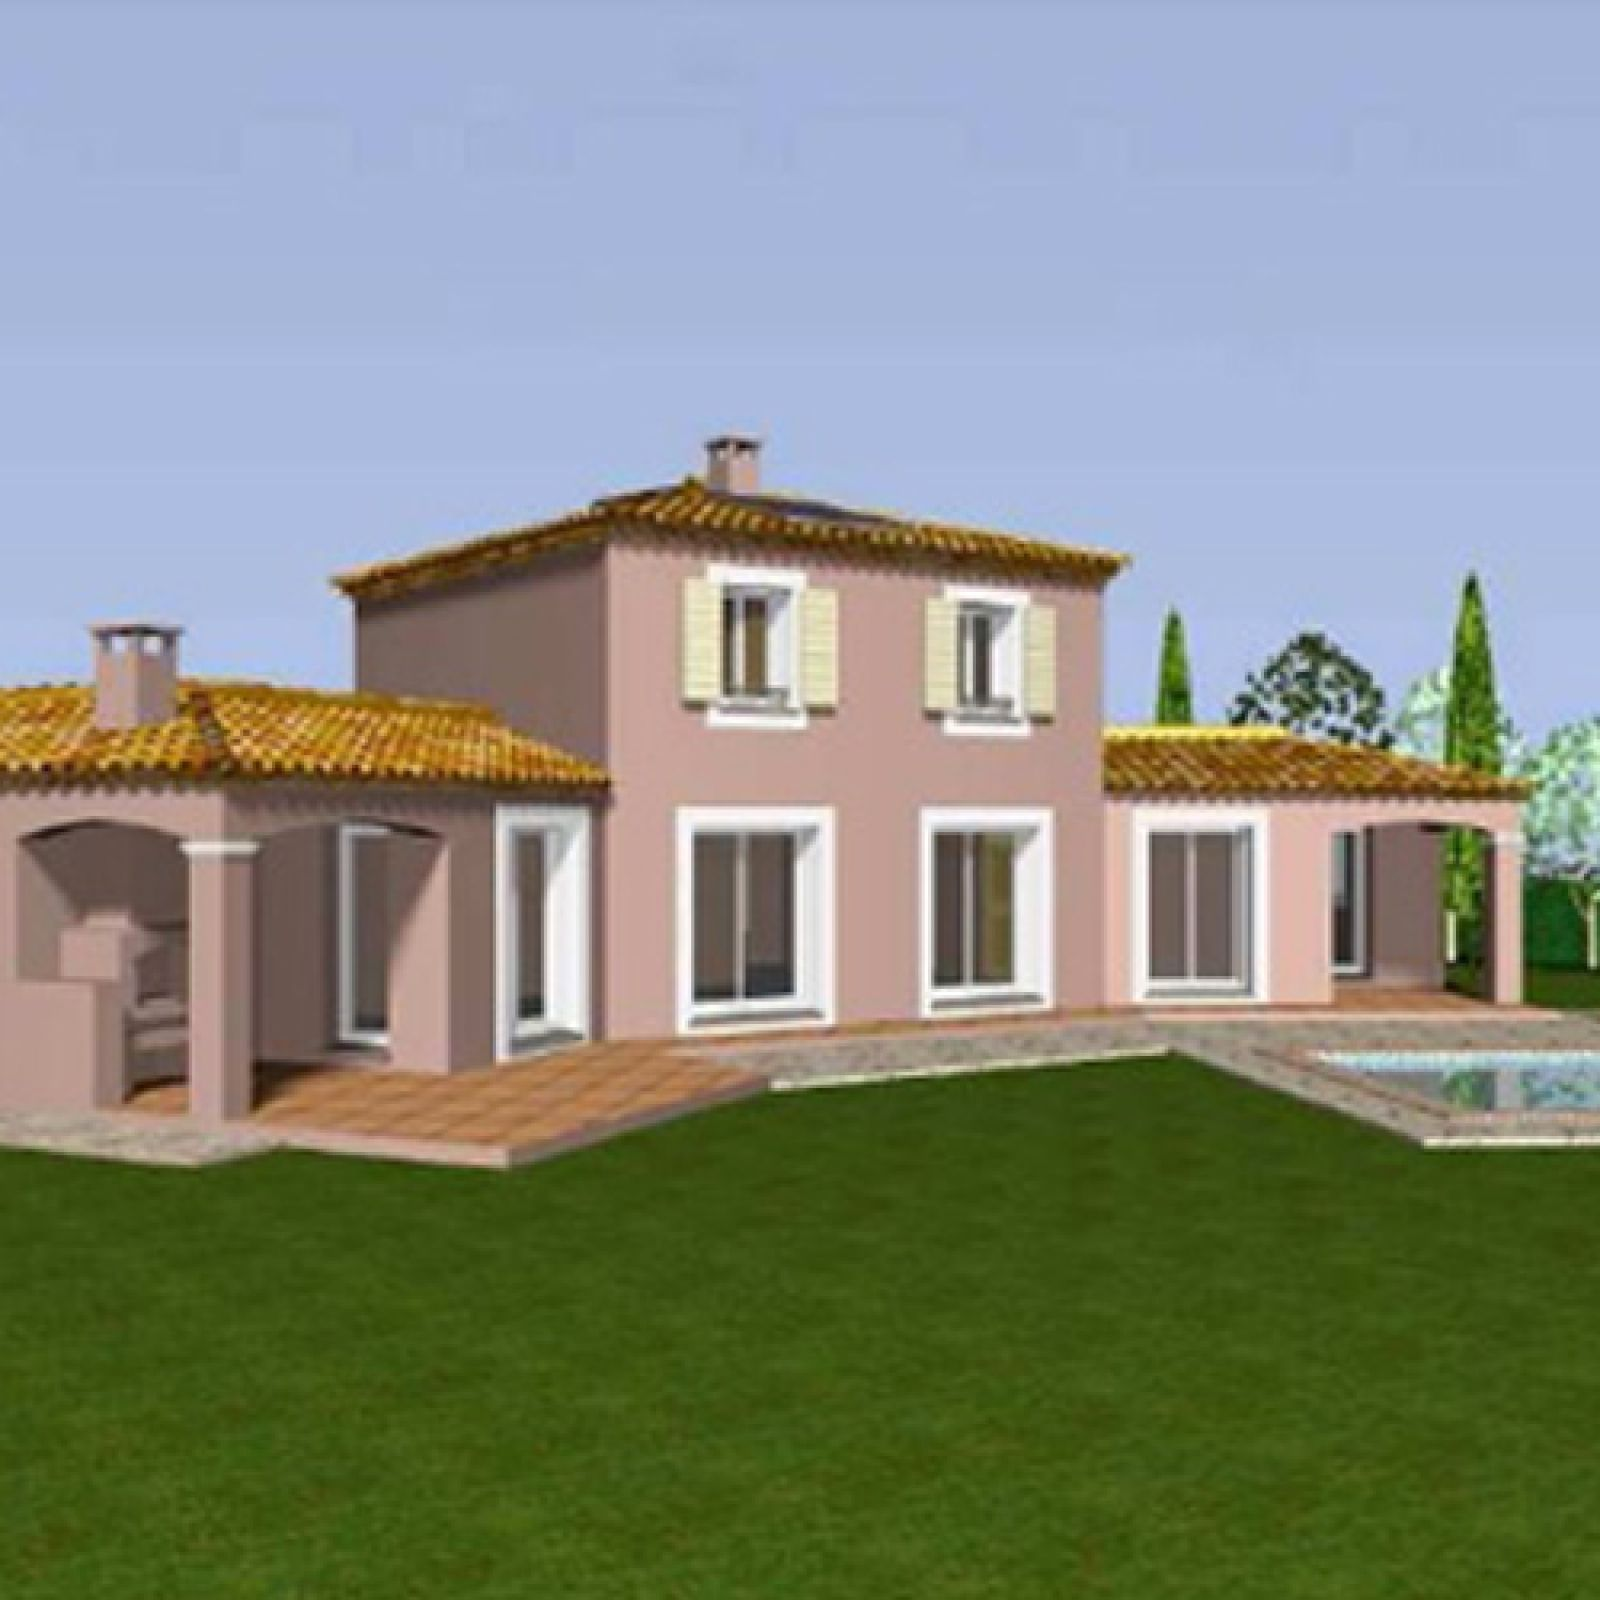 Villa proven ale tage partiel avec 2 ailes tendues for Villa maison plans photos